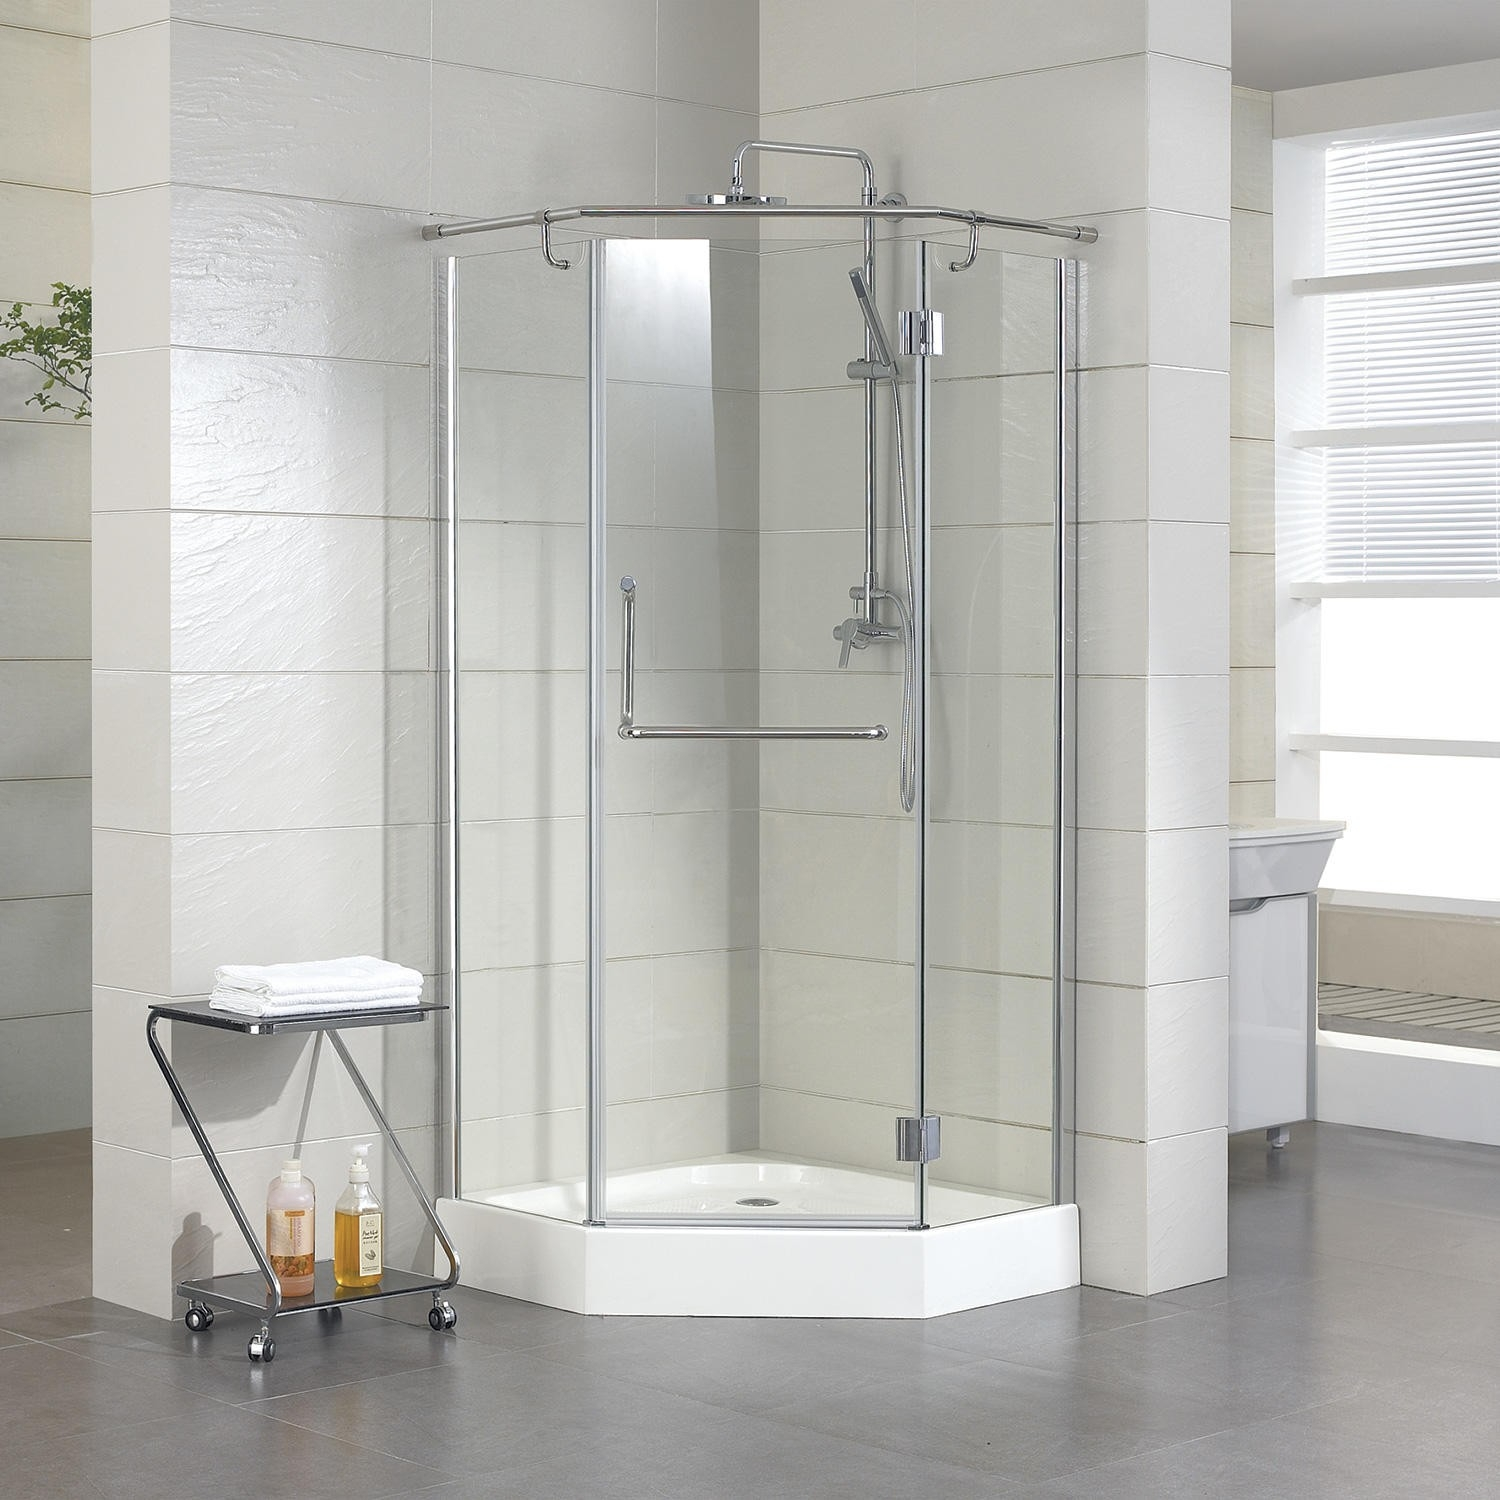 36 X 36 Neo Angle Shower Doors